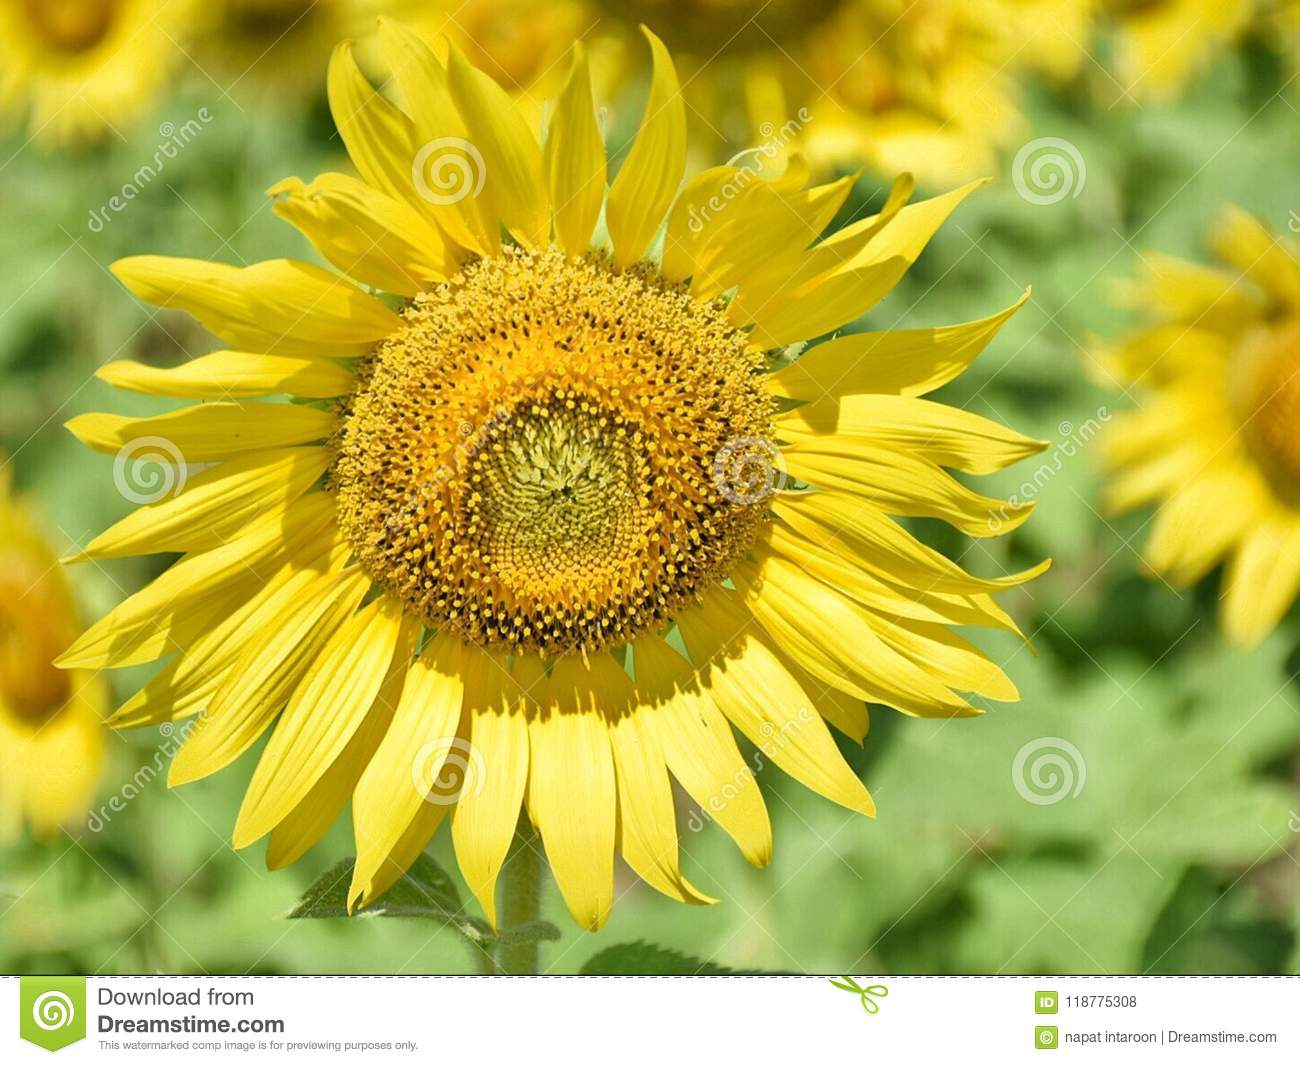 Sunflower On The Tree In The Stock Photo Image Of Vibrant Summer